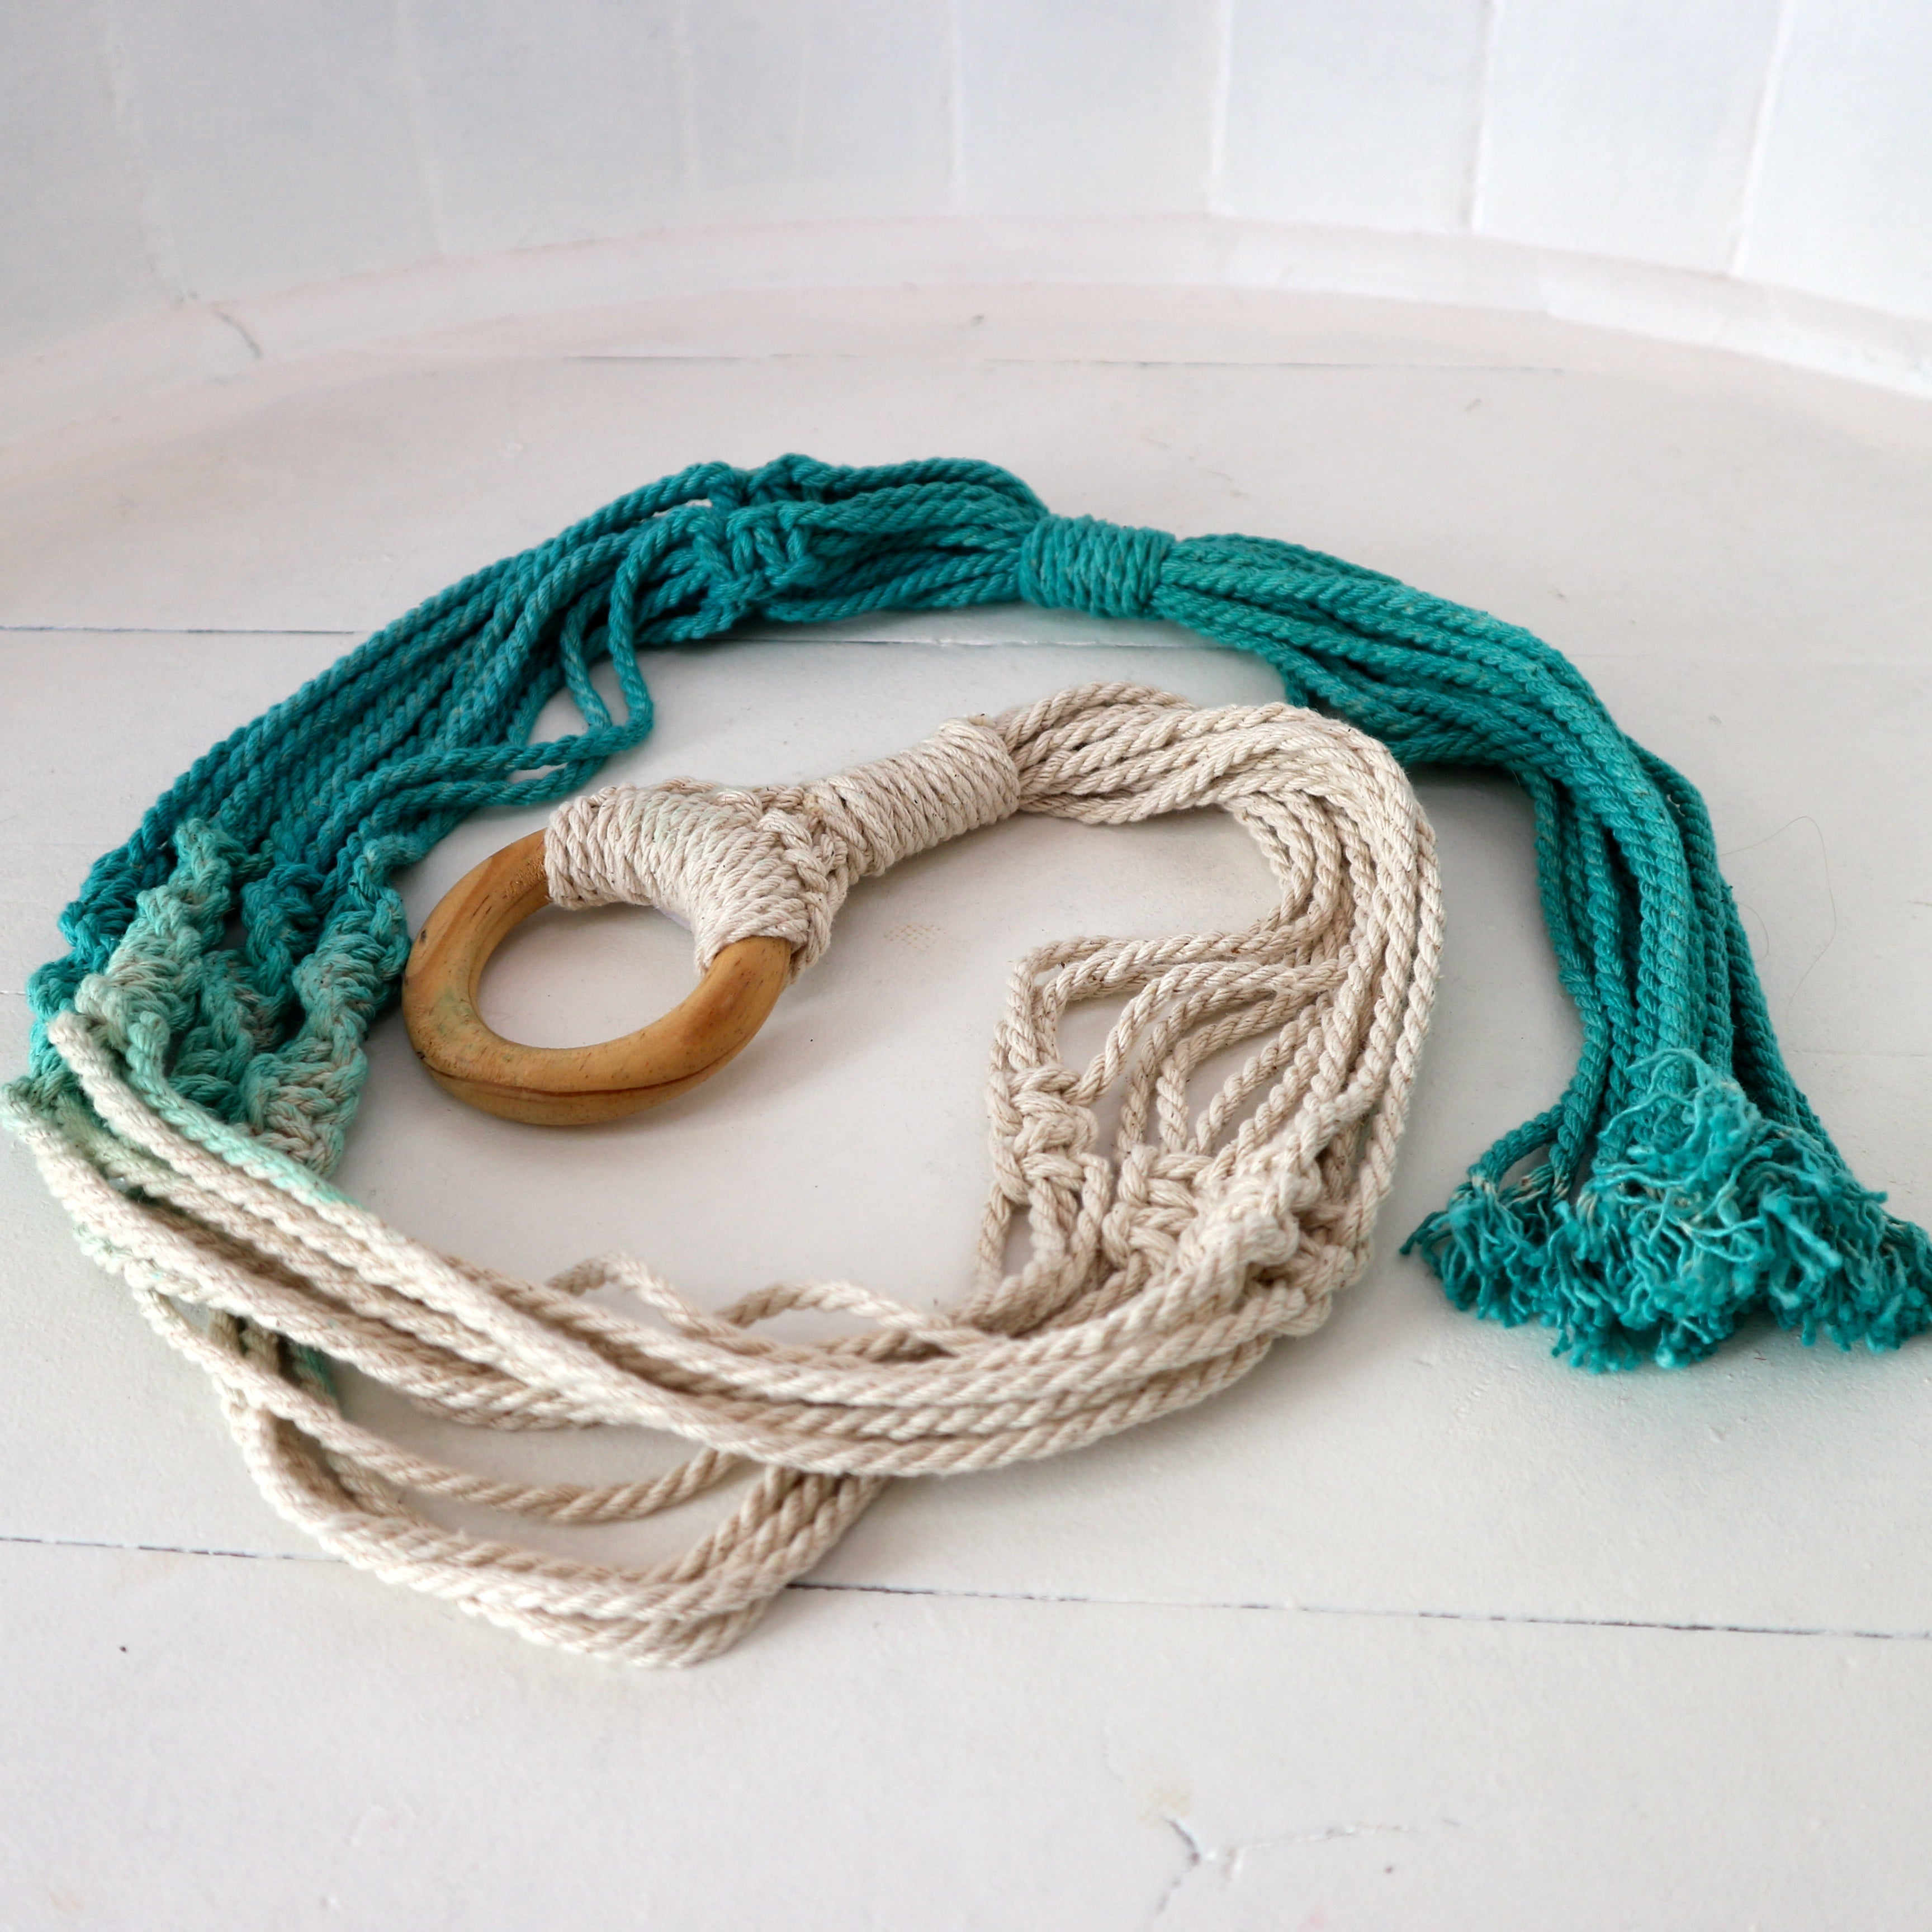 Turquoise Dip Dyed Macrame Plant Holder